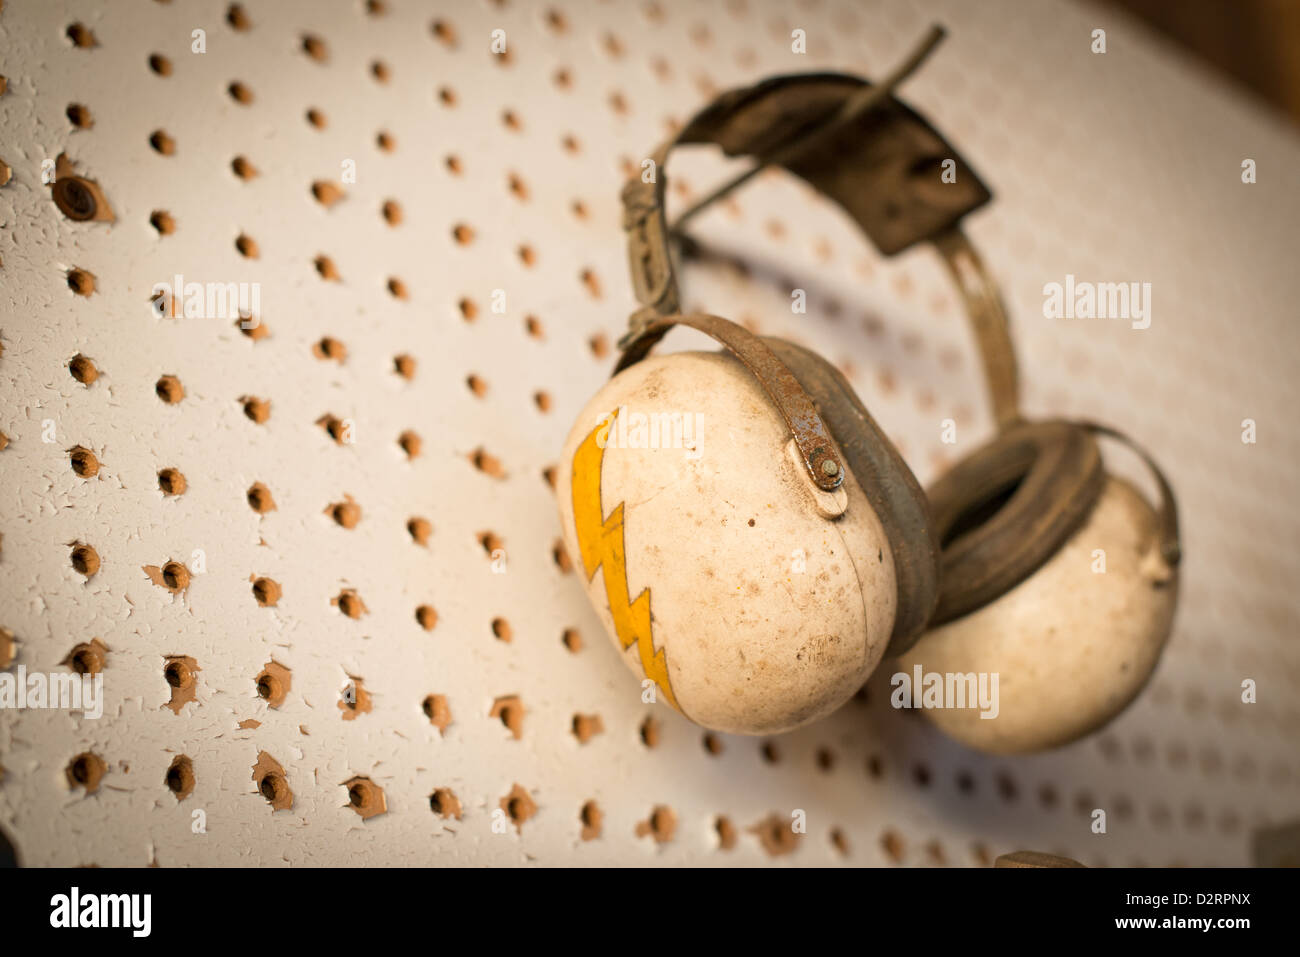 A pair of old earmuffs for hearing protection hangs on a wall. A bolt of lightning adorns the side. - Stock Image